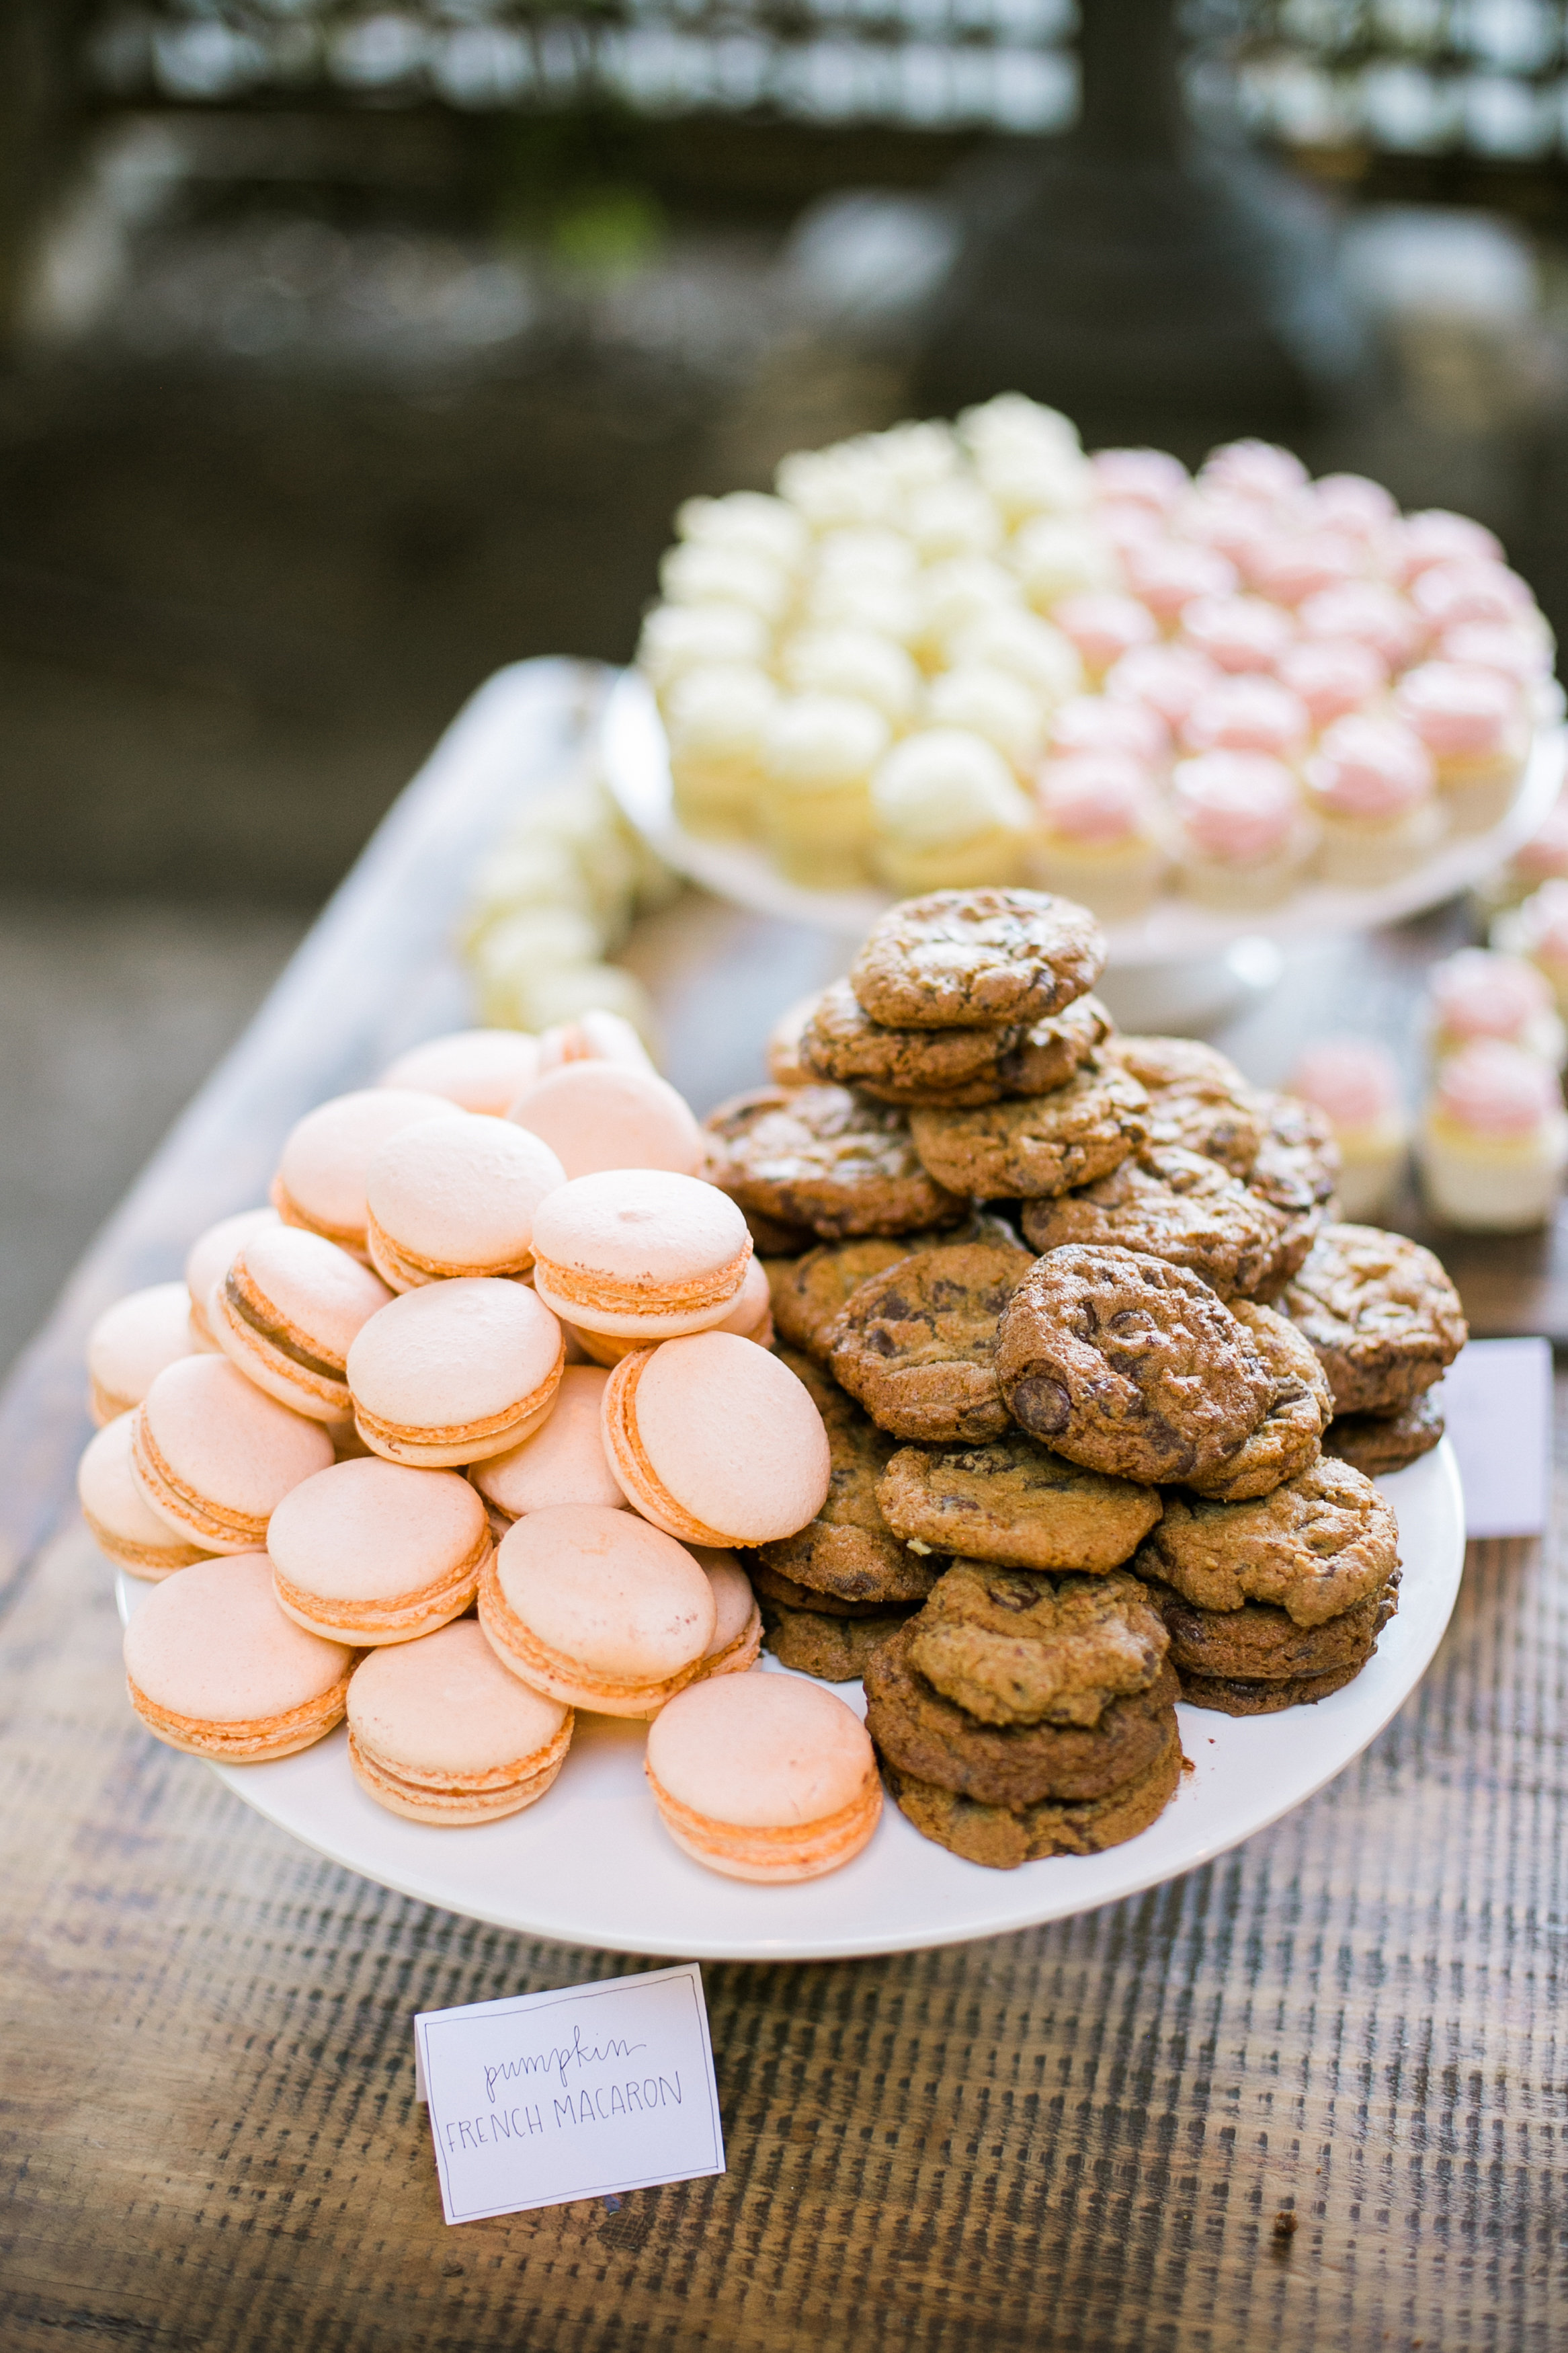 Wedding Wednesday: Moustache Baked Goods